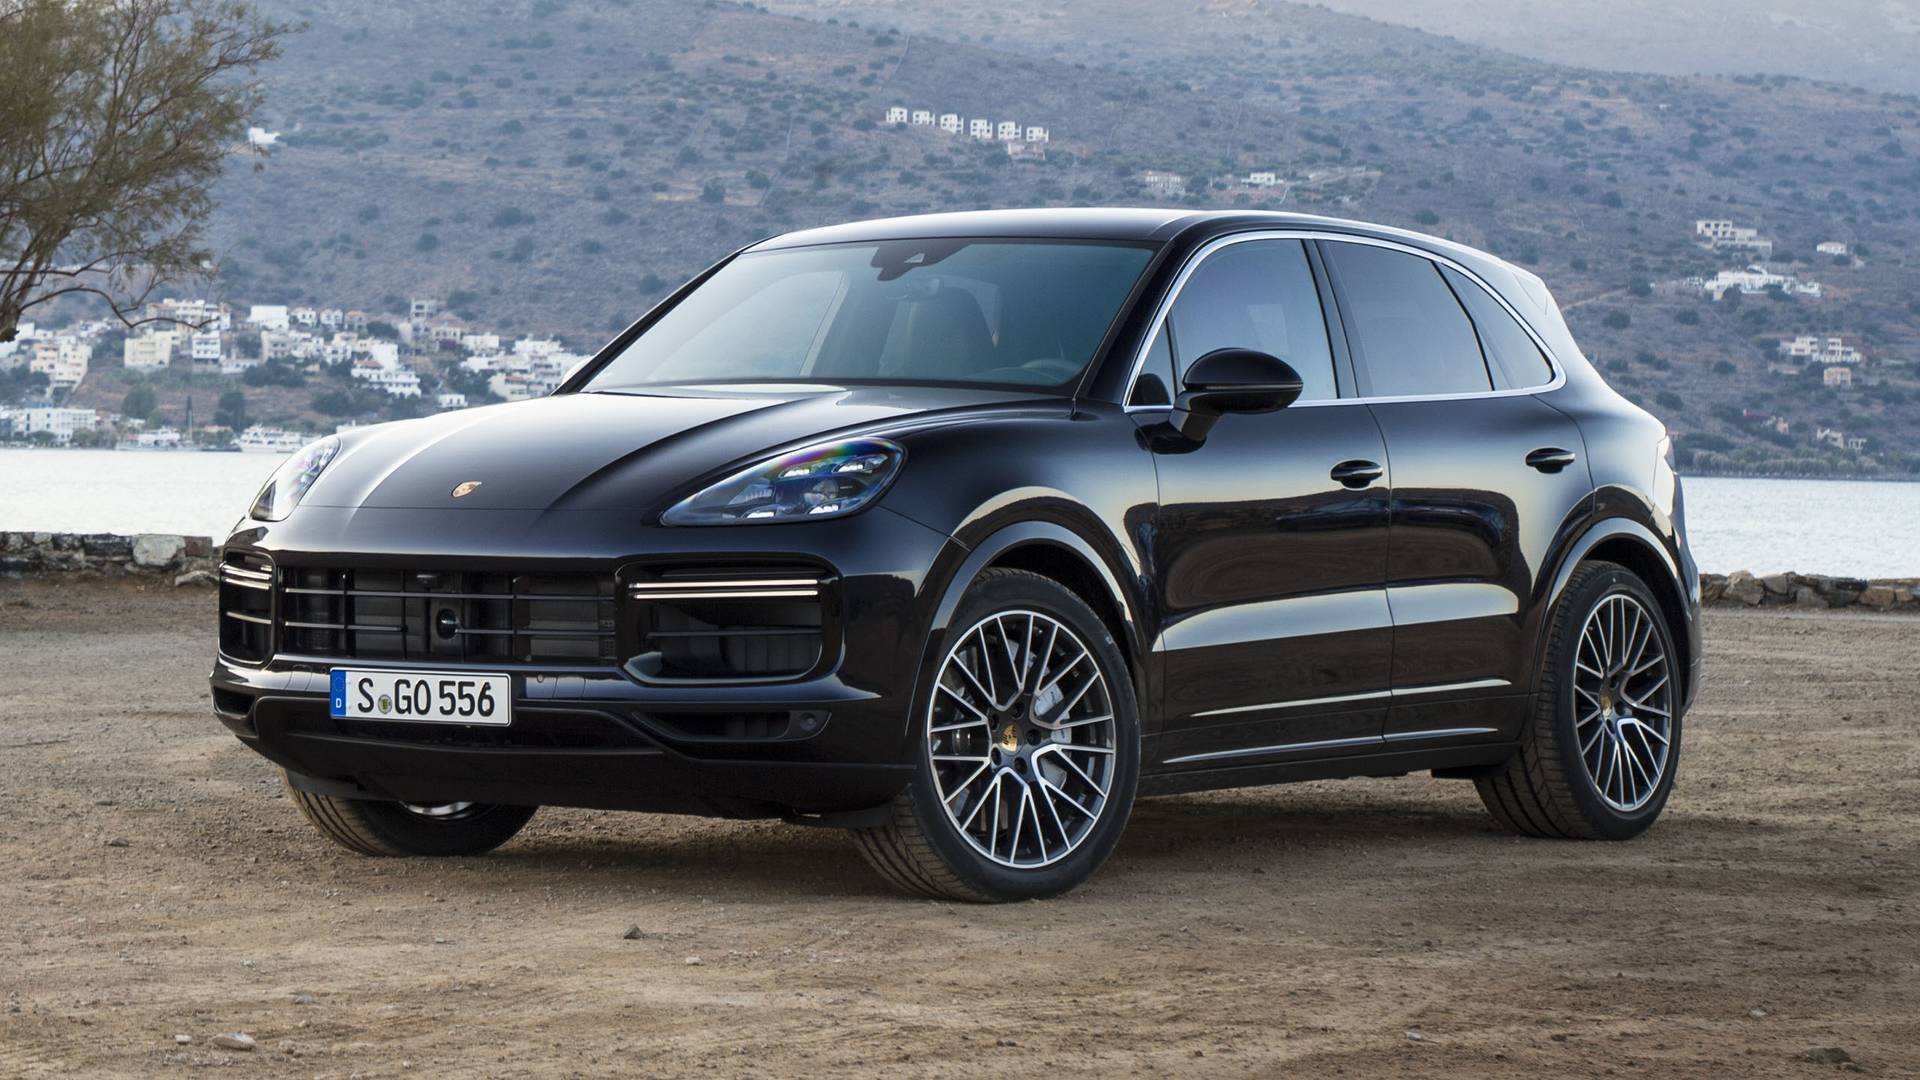 41 Great 2019 Porsche Cayenne Video Exterior and Interior with 2019 Porsche Cayenne Video